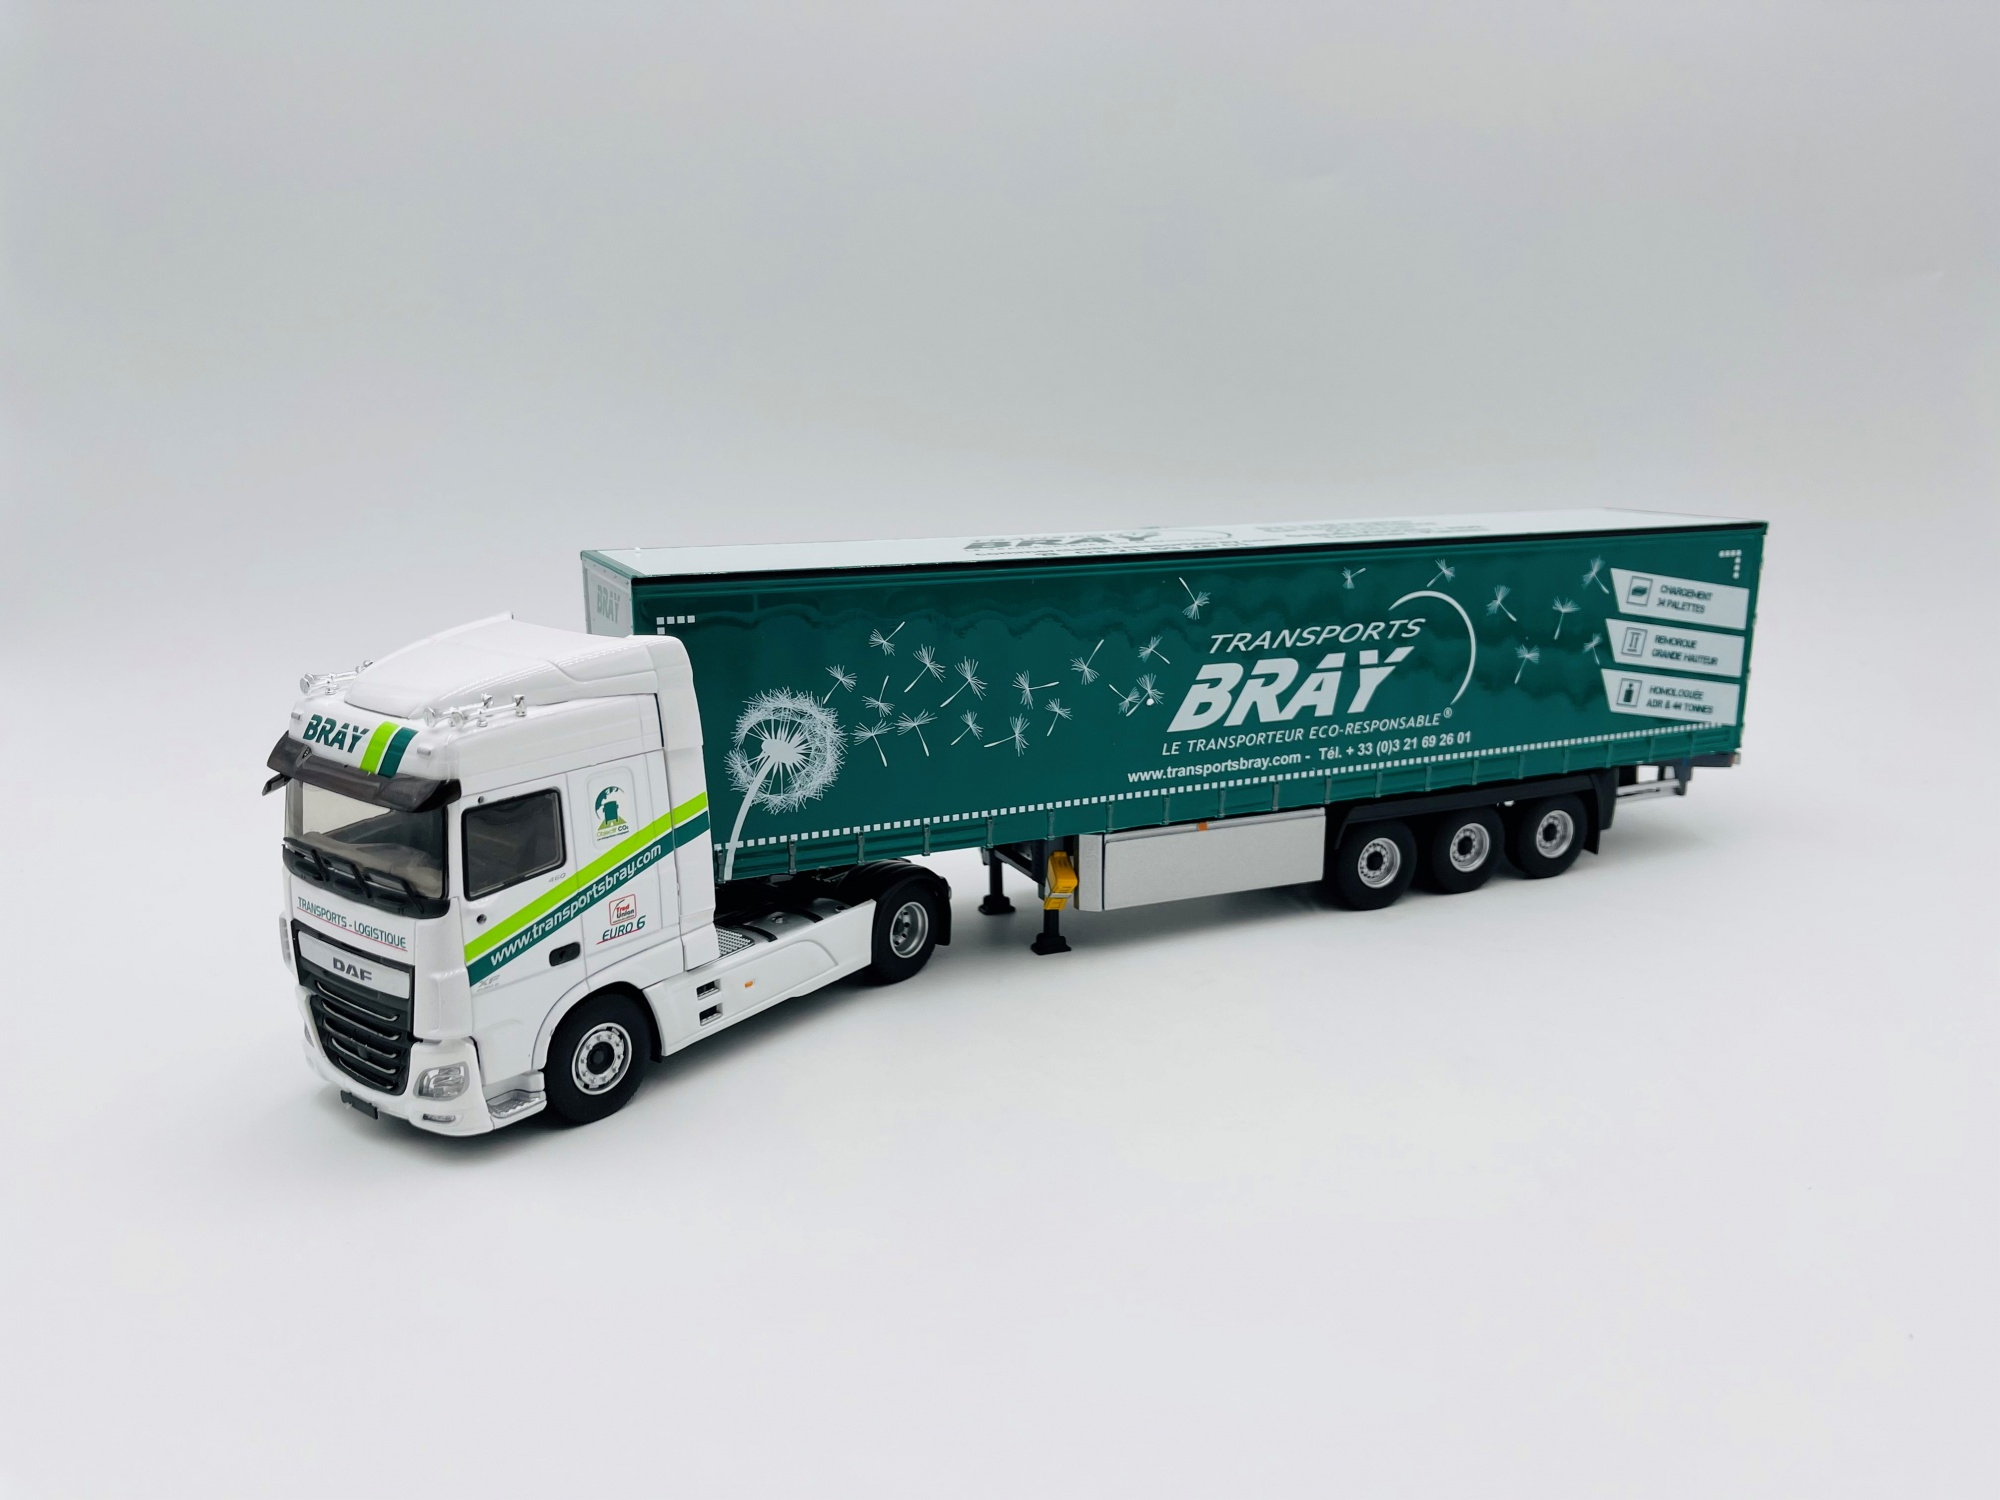 Daf XF 480 My 2017 Superspace Cab Tautliner Transport BRAY